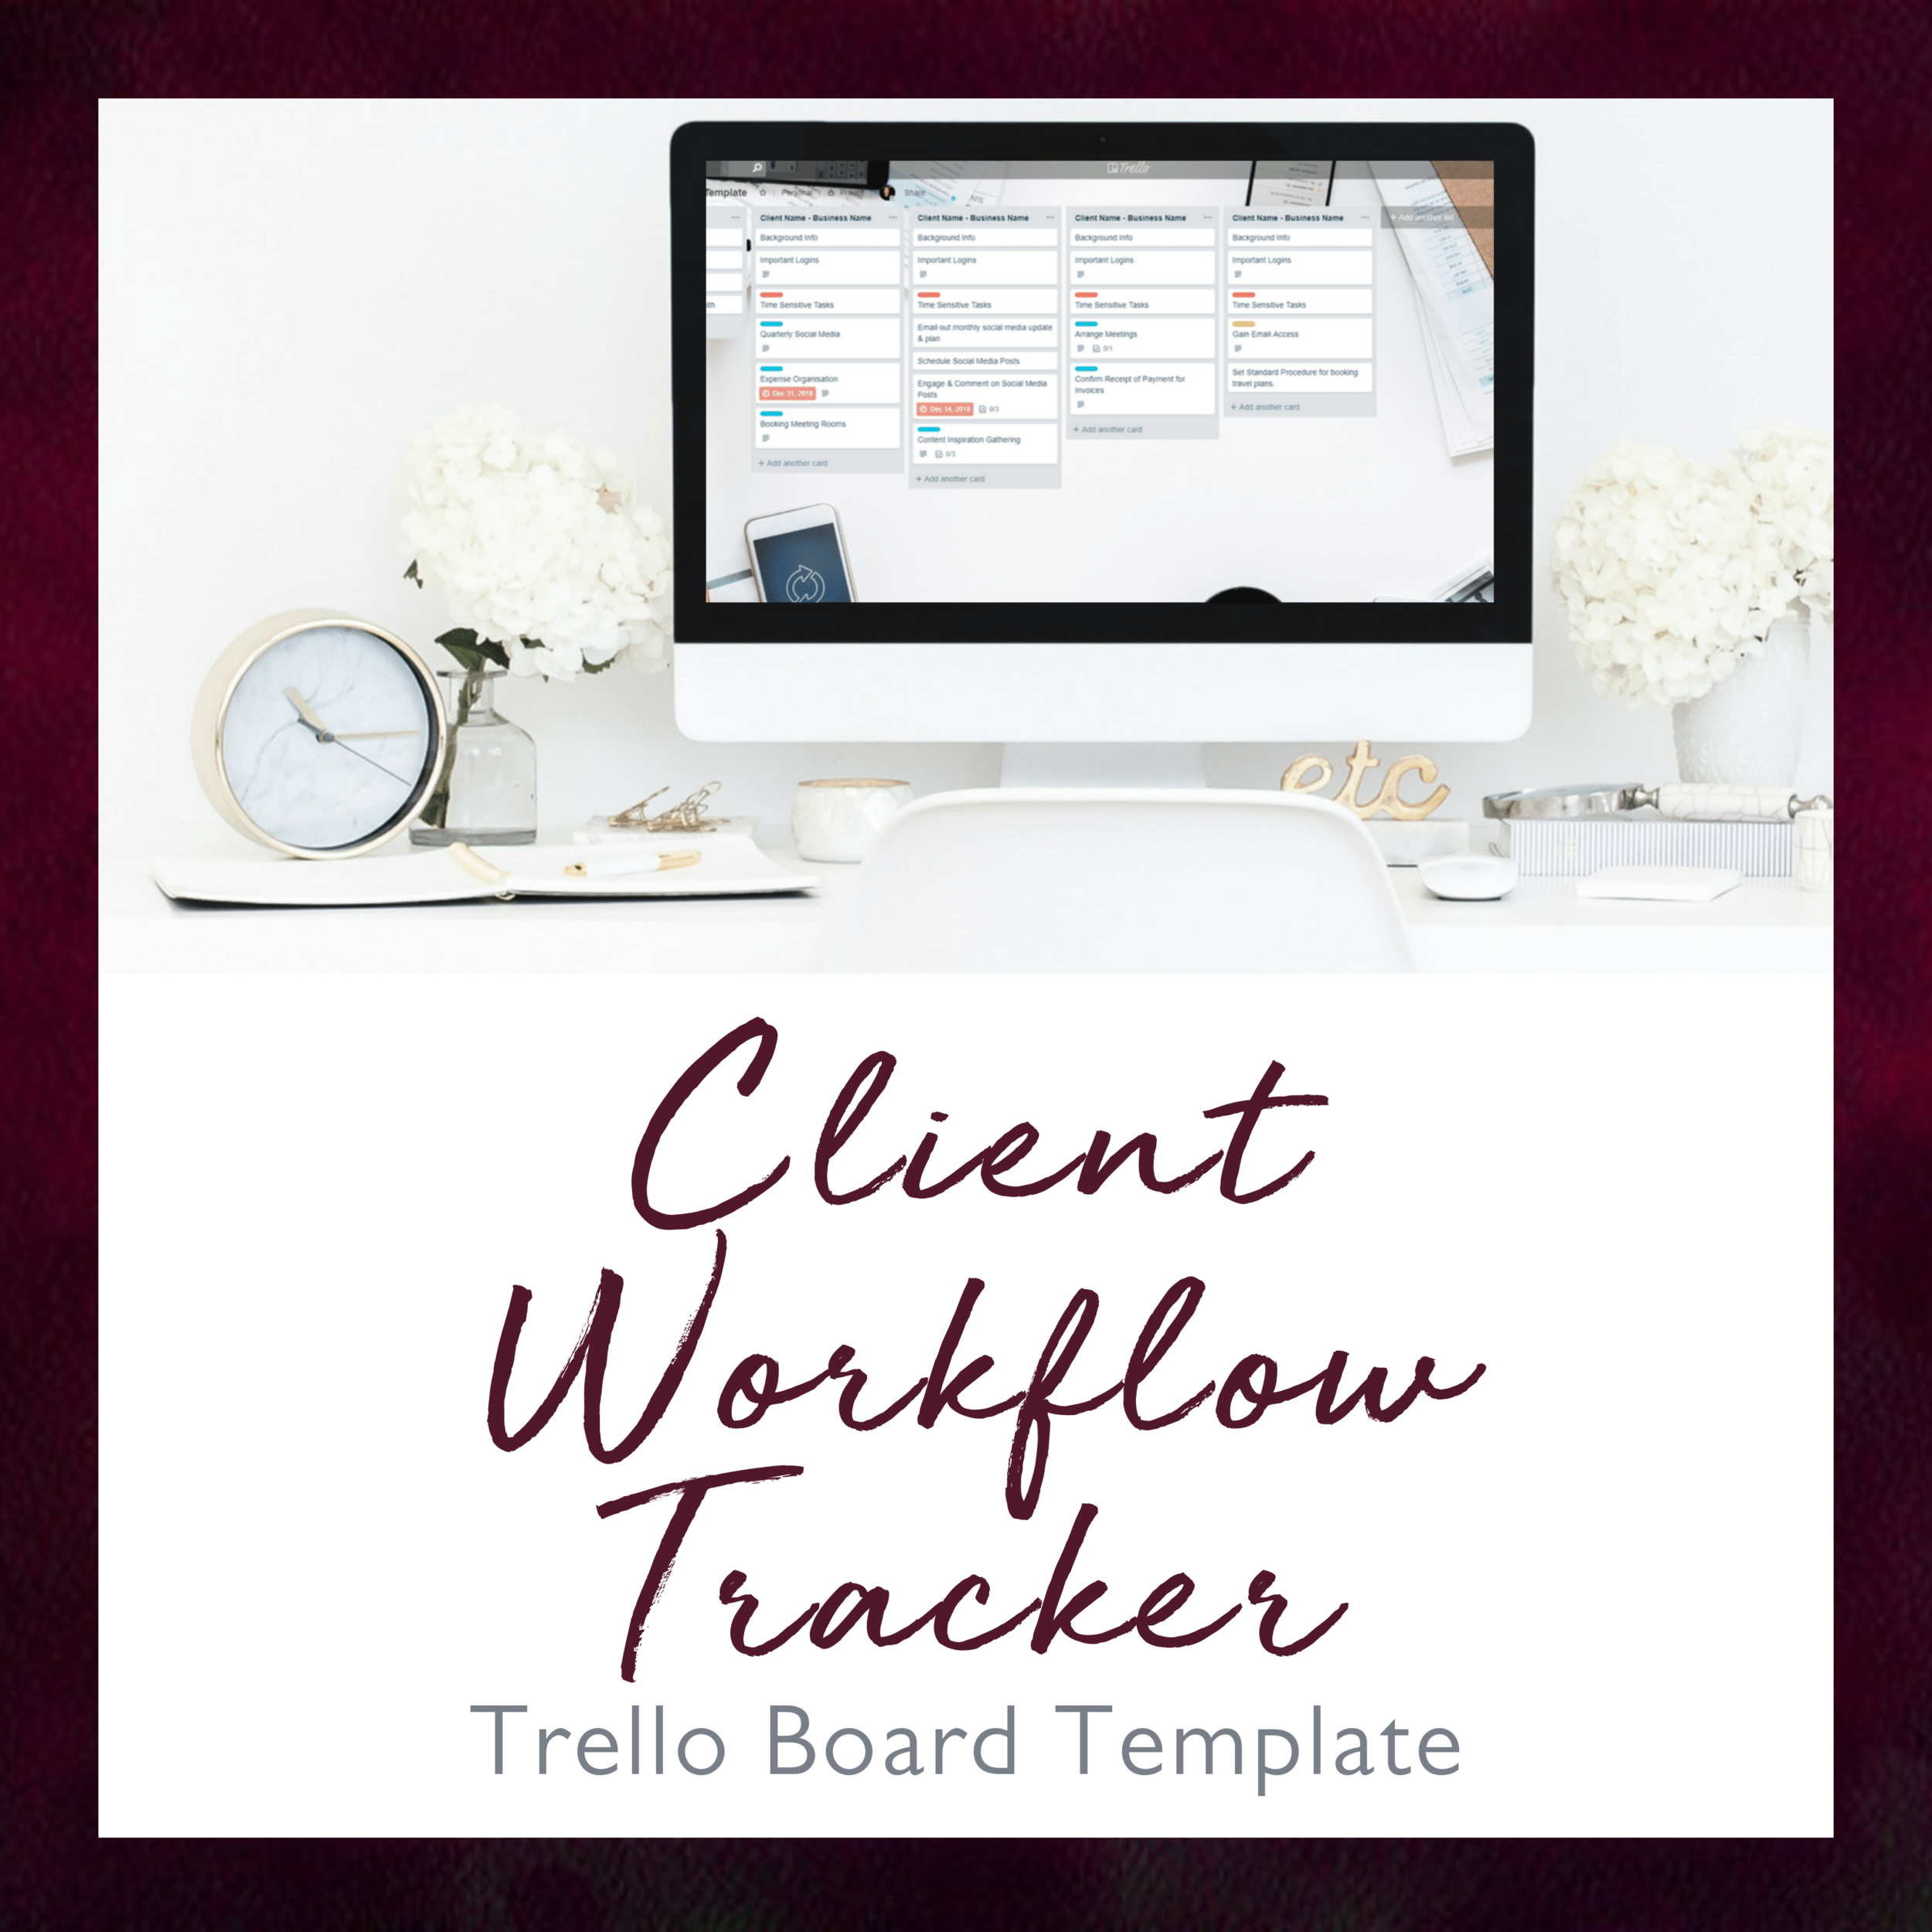 Trello is a super user-friendly project management tool that's great at helping you keep track of ongoing tasks and deadlines so you never miss a beat or drop the ball again.